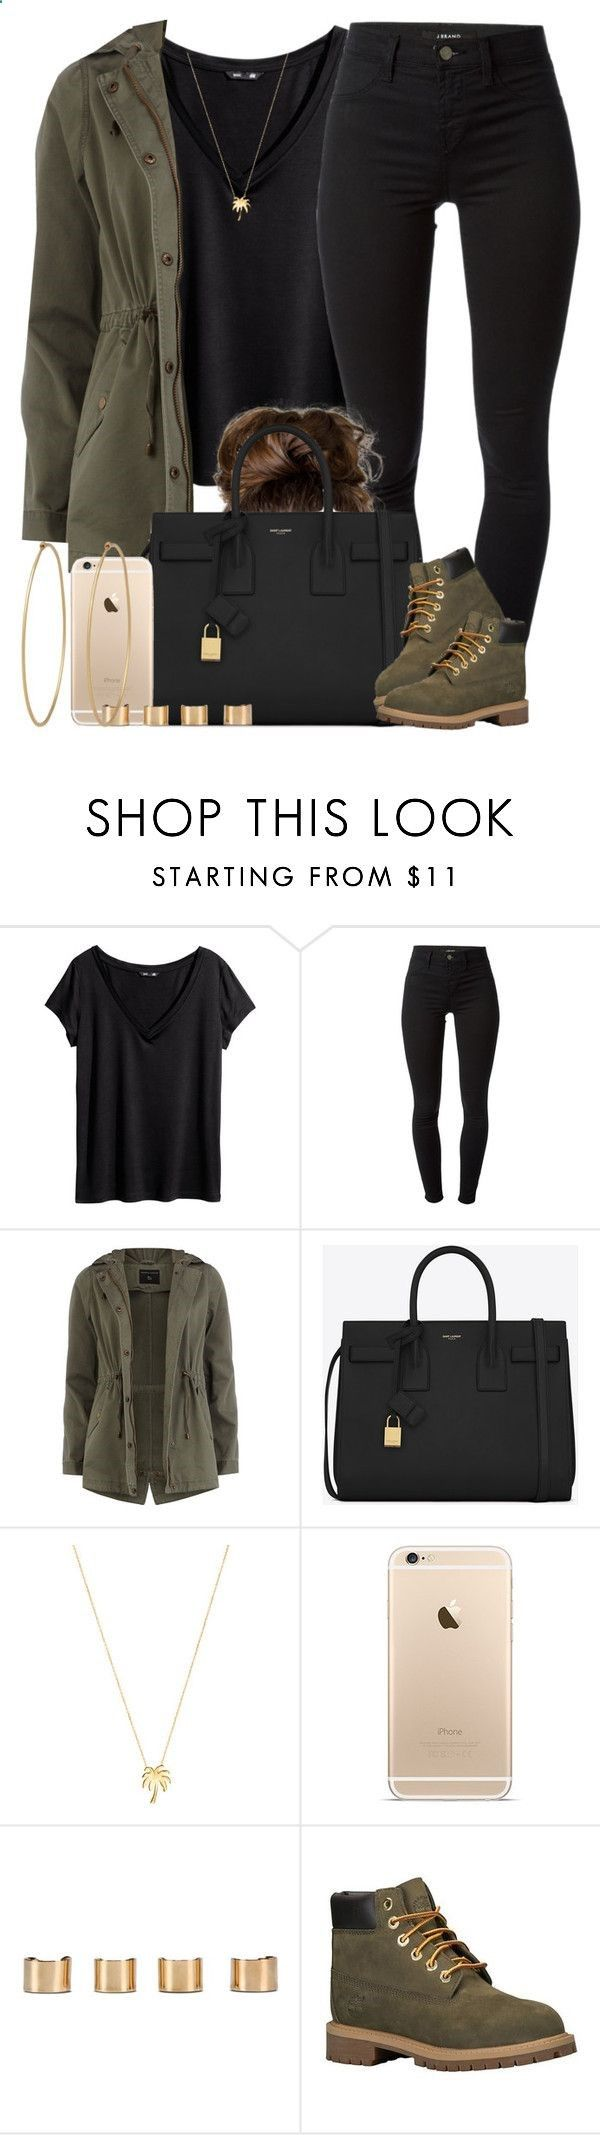 Boots For Dresses Fashion Pull up in that all Black.  by livelifefreelyy ❤ liked on Polyvore featuring HM, J Brand, Dorothy Perkins, Yves Saint Laurent, Joolz by Martha Calvo, Maison Margiela, Timberland, Social Anarchy, womens clothing and womens fashion - He boots are the queens of all the outfits: day, night, casual, formal. They are always invited and is that not only help us keep our feet warm but their variety of designs make it a complement that offers many alternatives dependin...